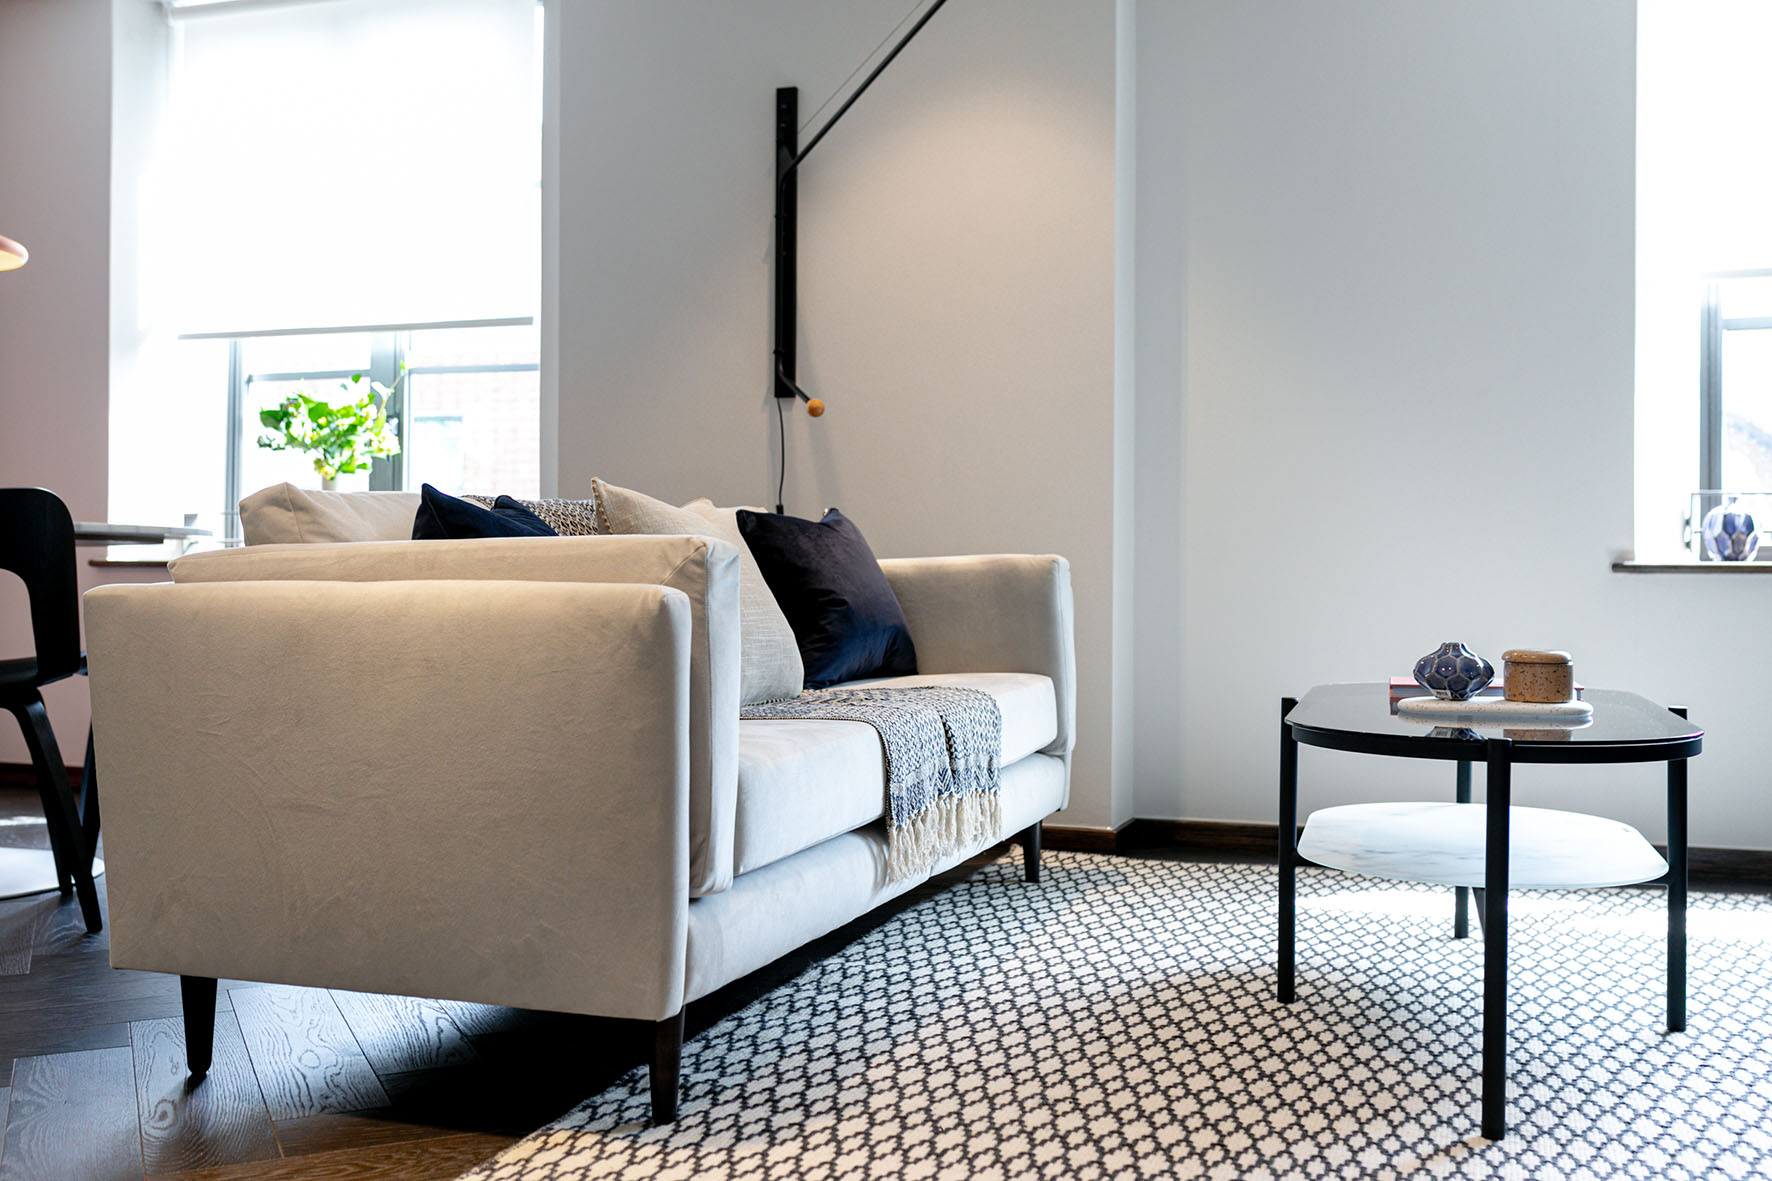 Lovelydays luxury service apartment rental - London - Soho - Noel Street VII - Lovelysuite - 1 bedrooms - 1 bathrooms - Comfortable sofa - 47ffd8421687 - Lovelydays